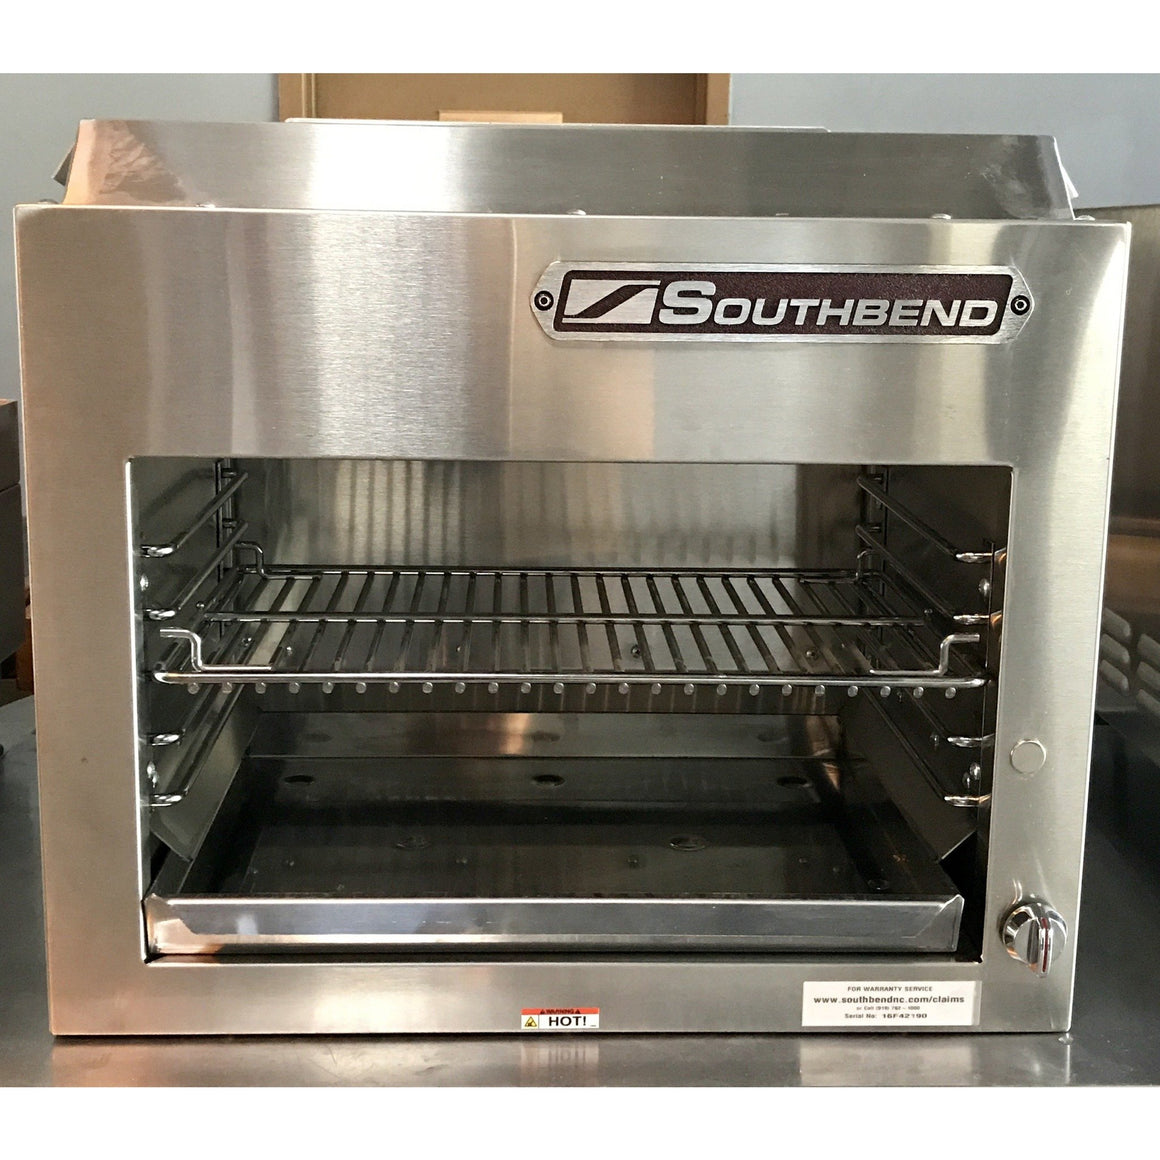 "Southbend- Commercial Infrared Heavy Duty 24"" Cheese Melter-SB-P24CMC-16F42190-N"